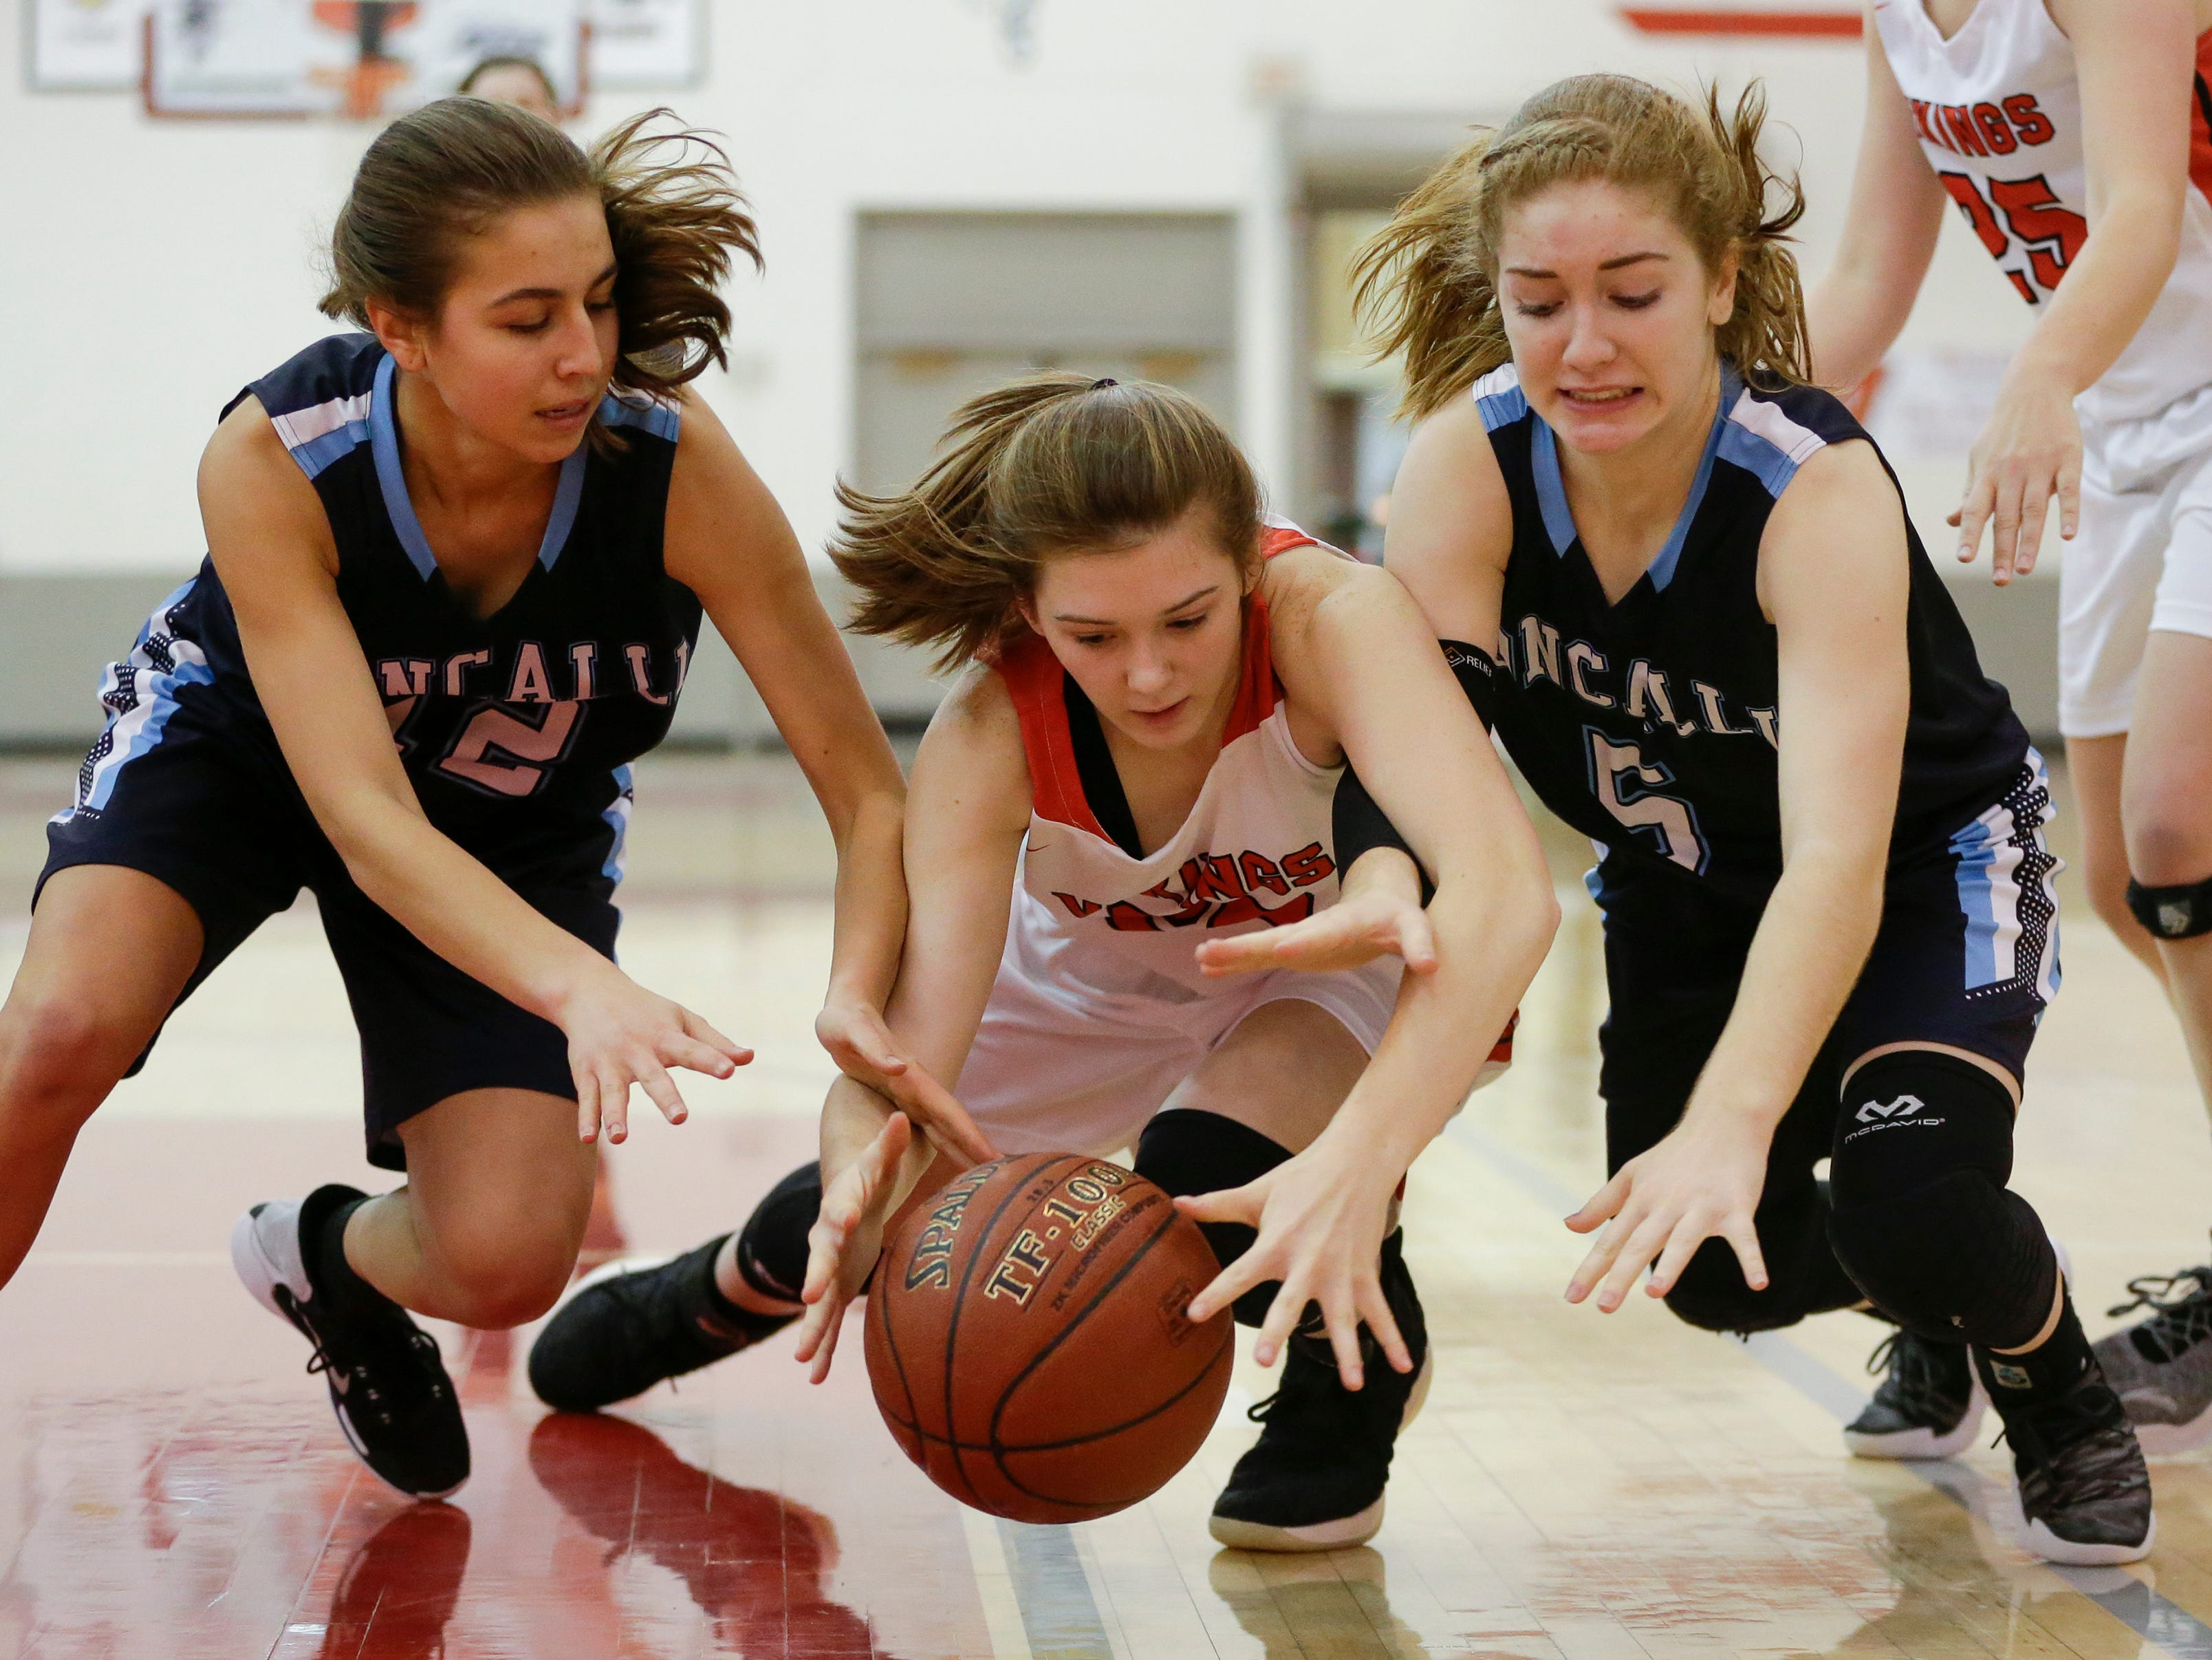 Valders' Kate Wagner (20) fends off Roncalli's Megan Moczynski, left, and Morgan Pritzl for possession of a loose ball during an Eastern Wisconsin Conference game at Valders High School Friday, November 30, 2018, in Valders, Wis. Joshua Clark/USA TODAY NETWORK-Wisconsin